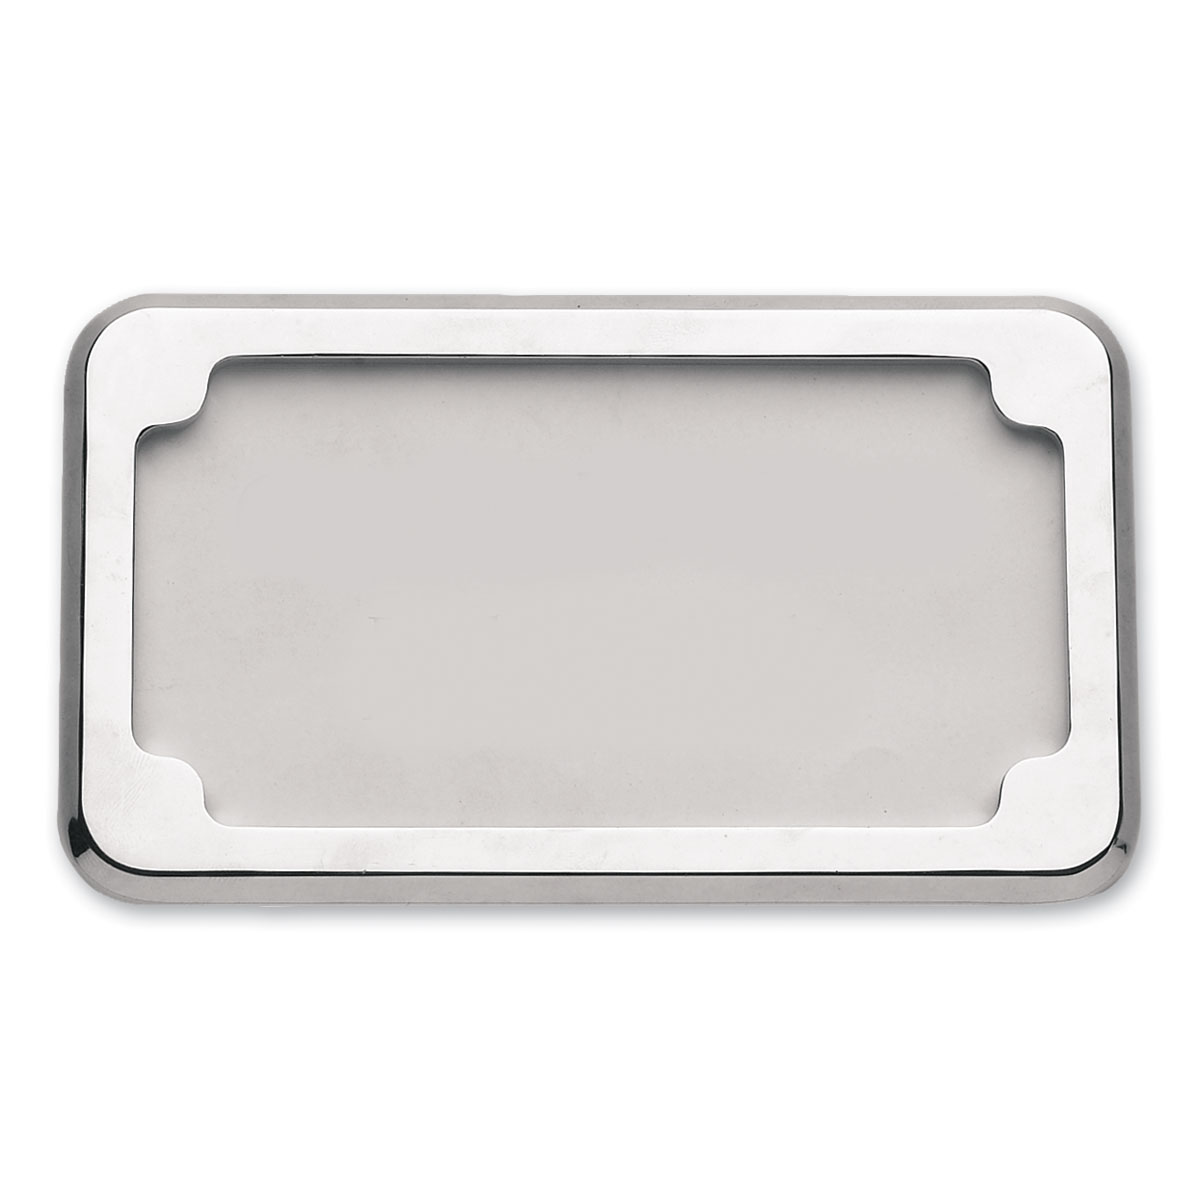 CycleVisions Chrome Beveled License Plate Frame | 340-0079 | J&P Cycles